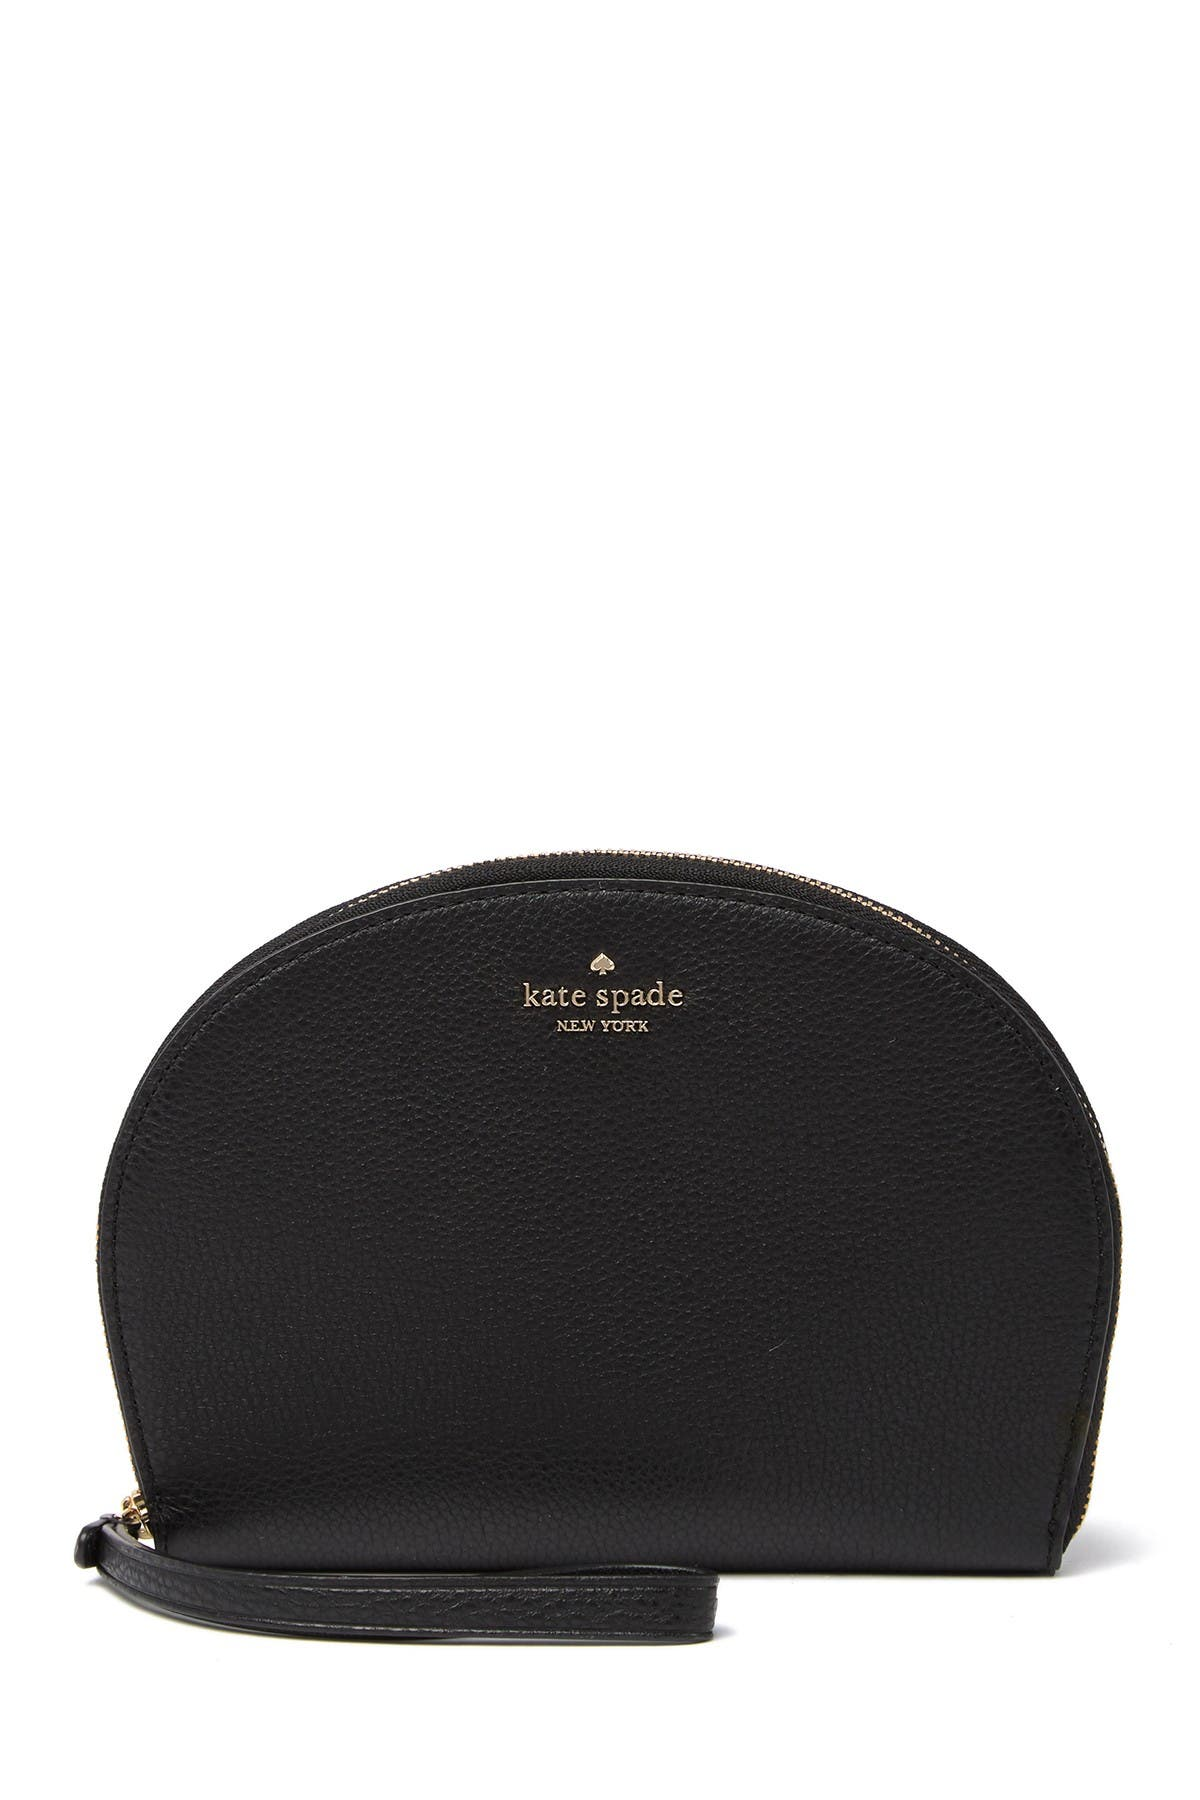 Image of kate spade new york rima leather round wristlet pouch